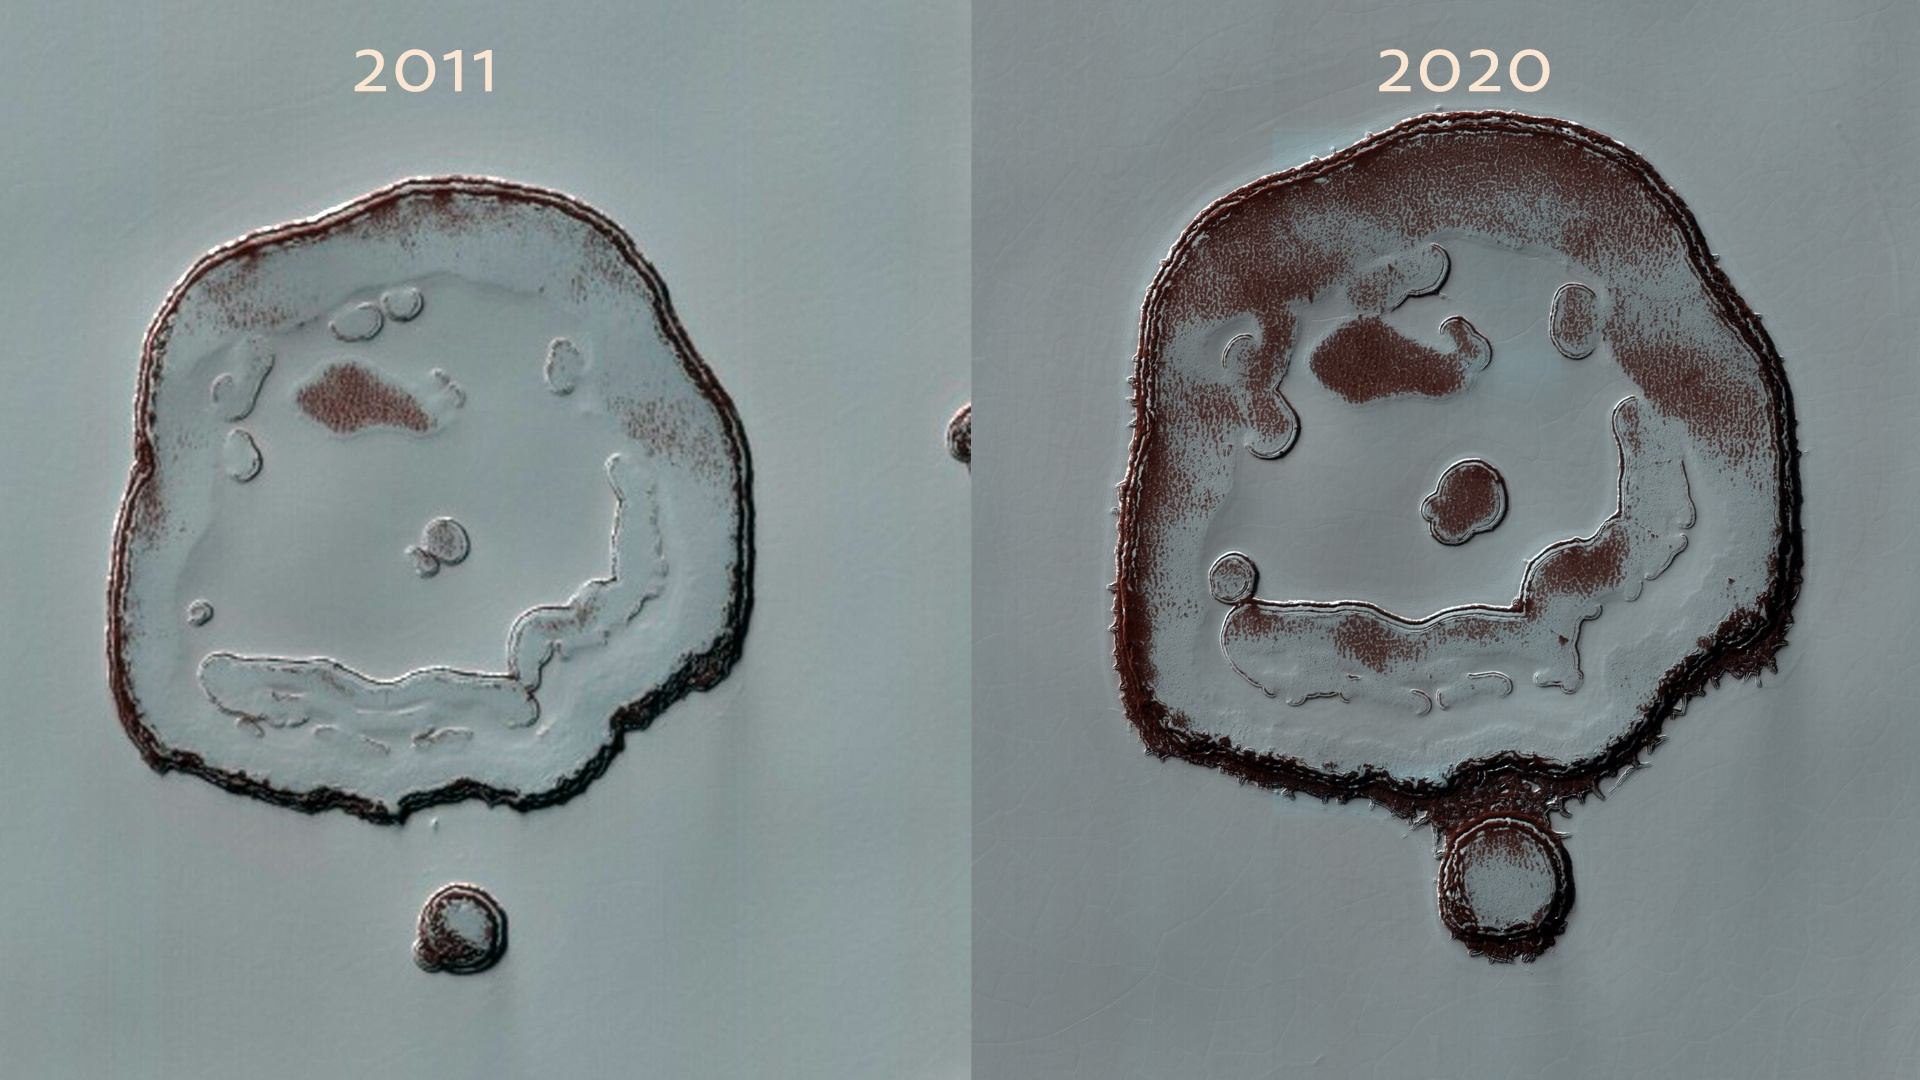 """The """"happy face crater"""" on Mars has changed right before our eyes"""